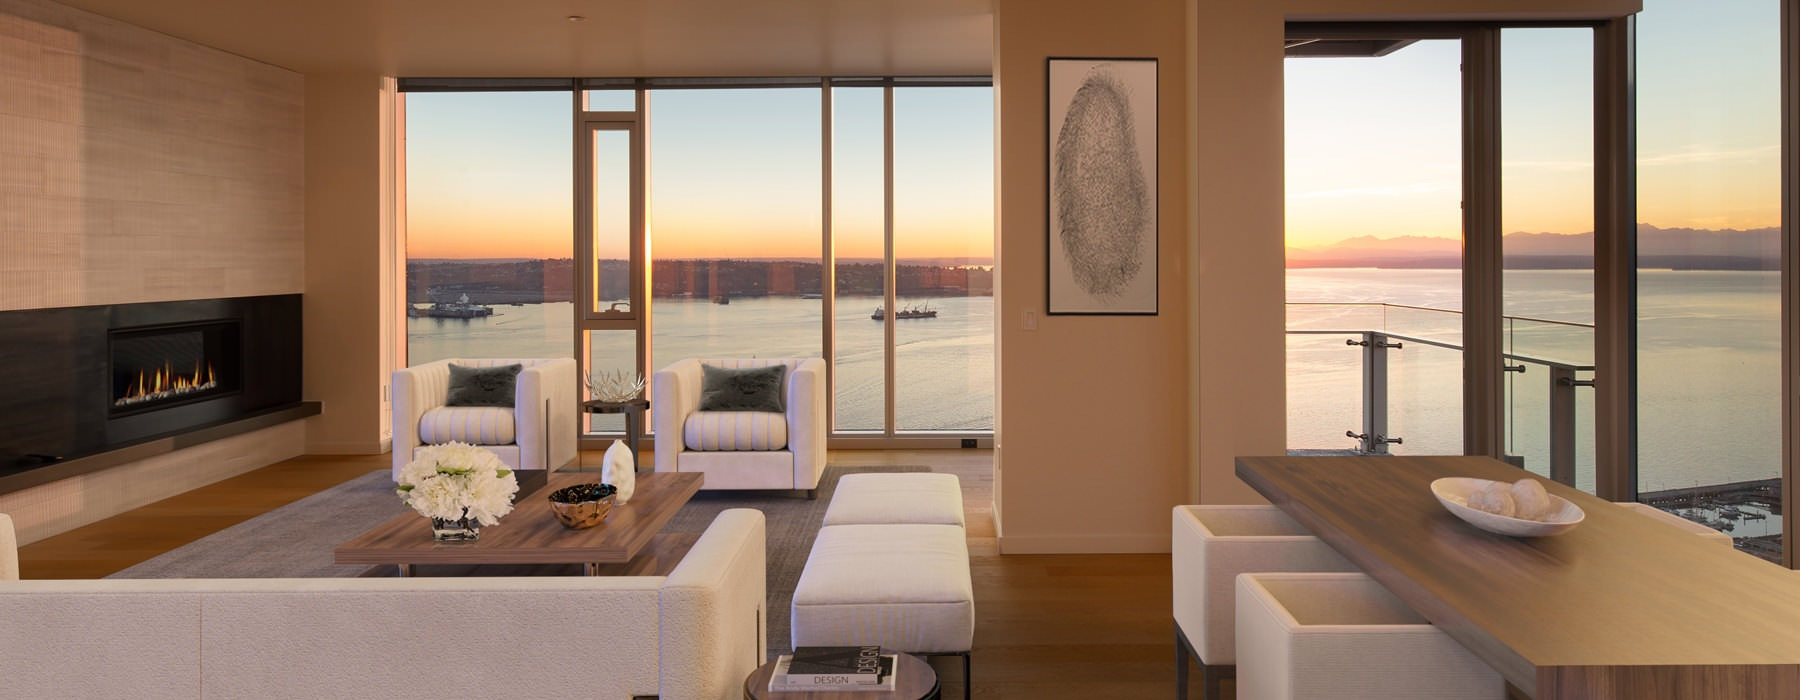 penthouse interior with floor-to-ceiling windows and view of the sunset across the bay